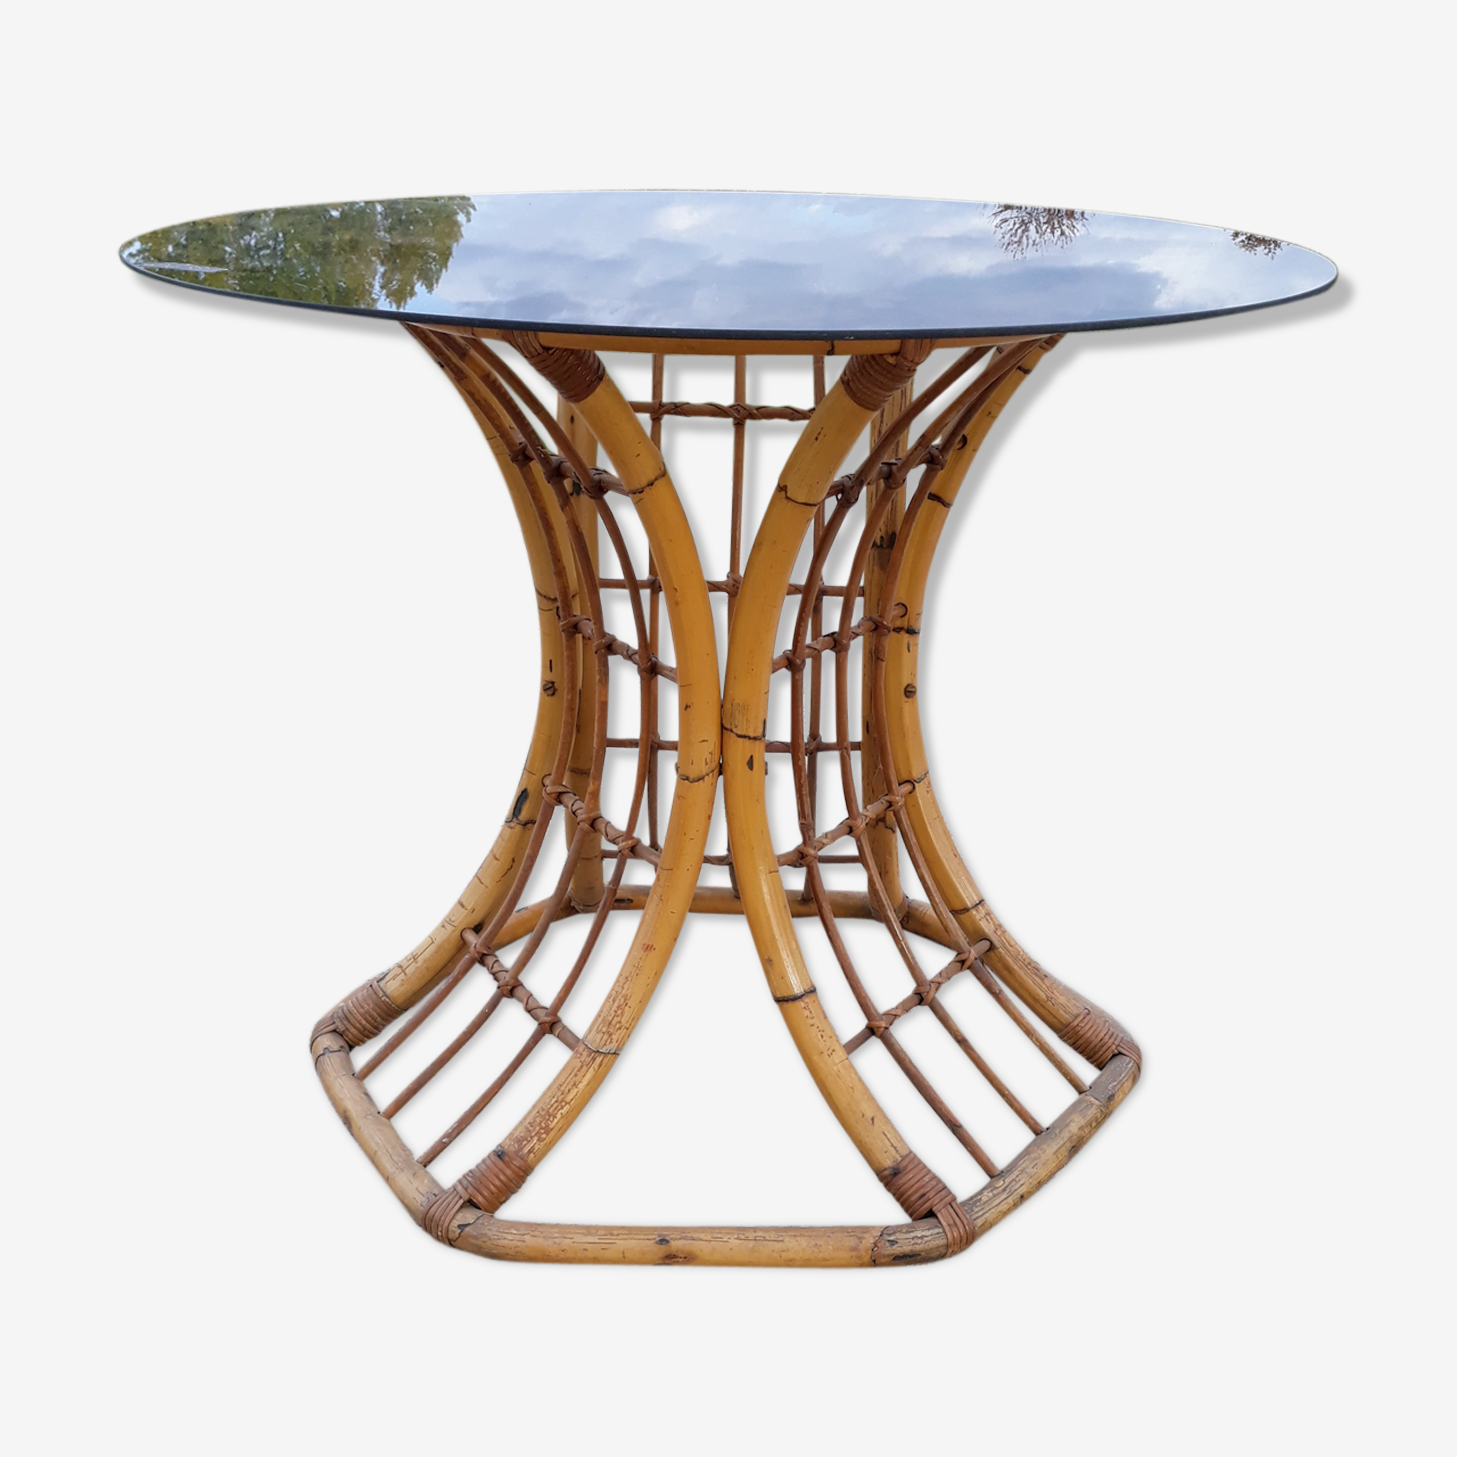 Round vintage rattan dining table